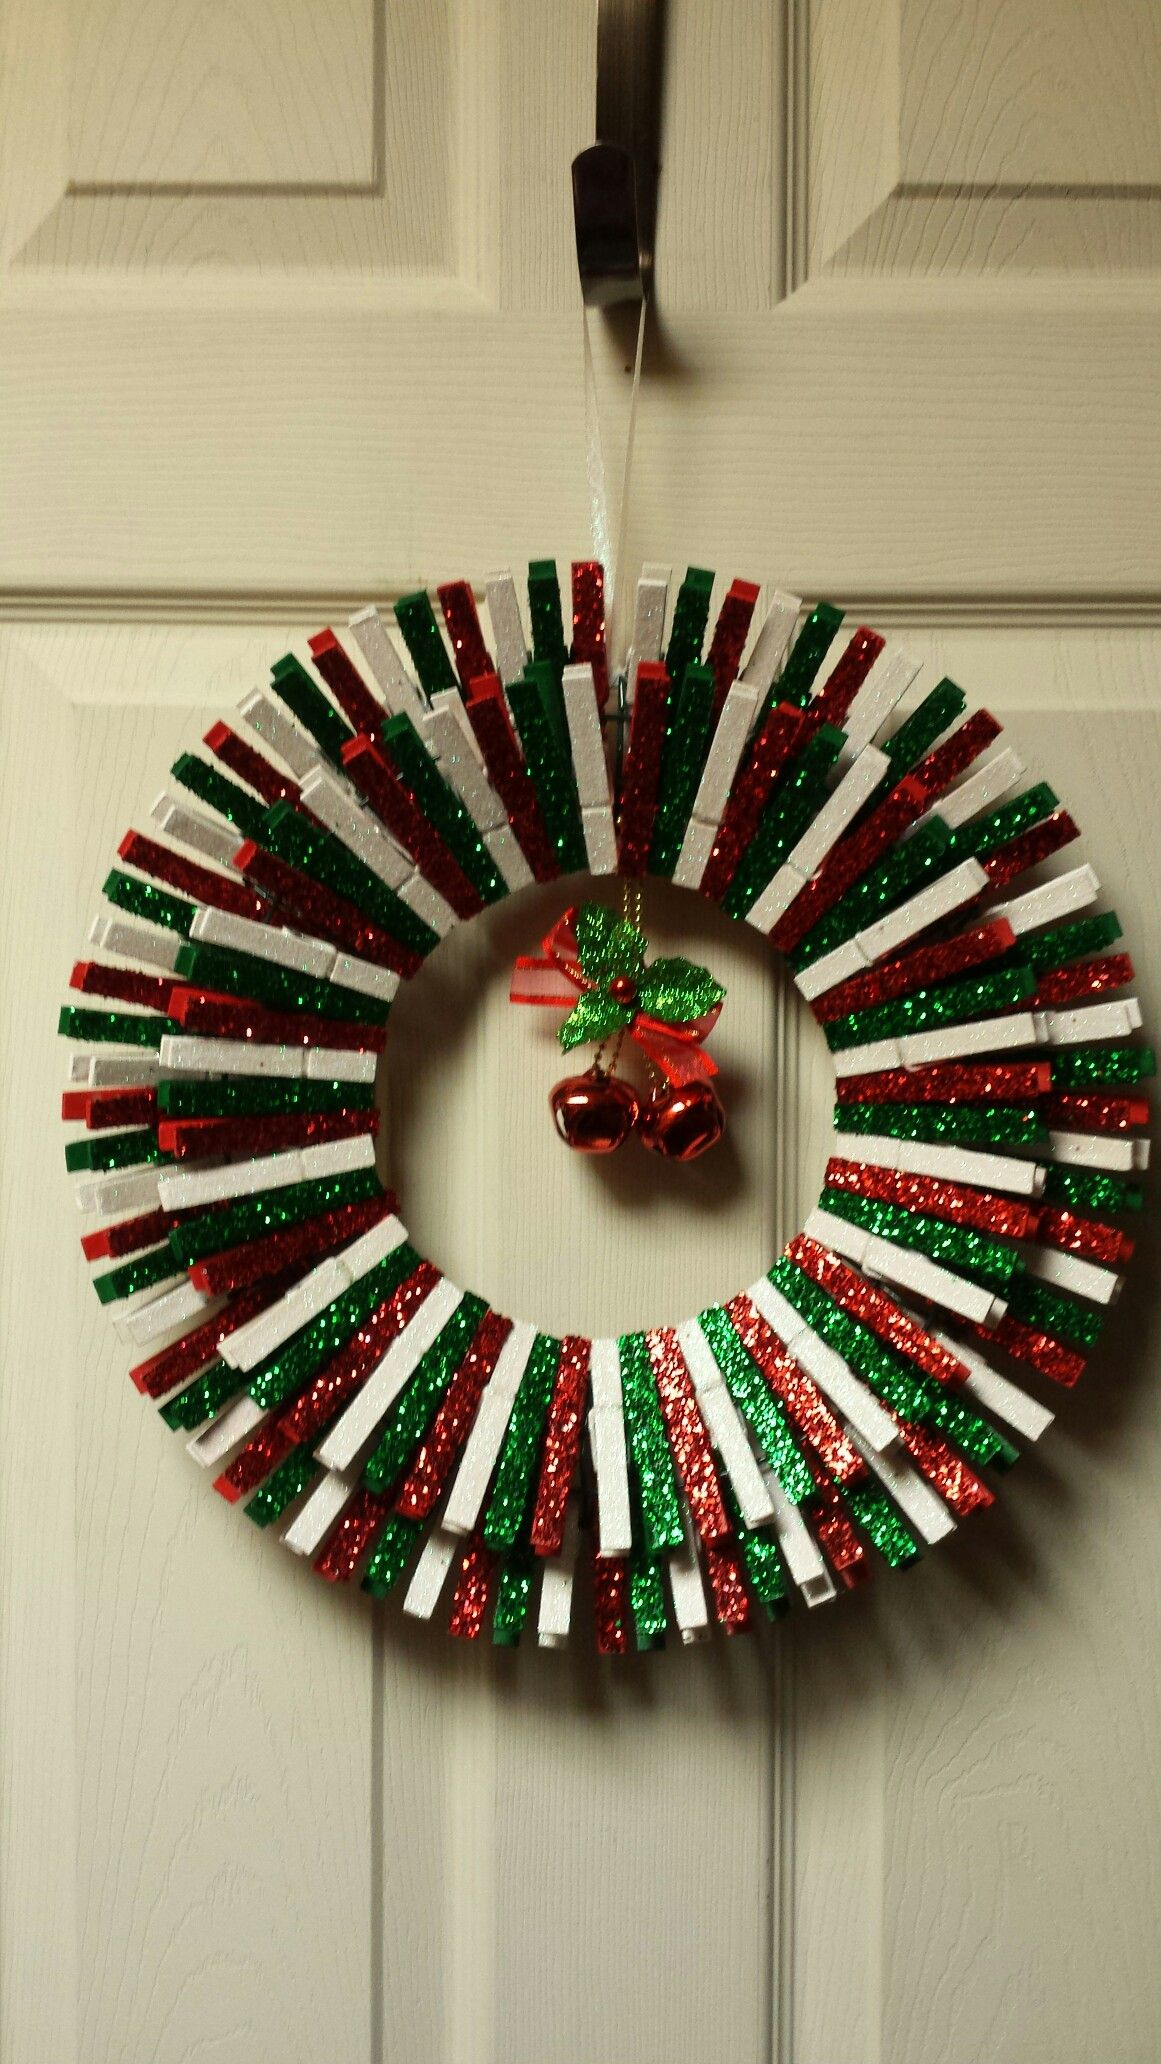 Christmas clothespin wreath-no directions, picture only